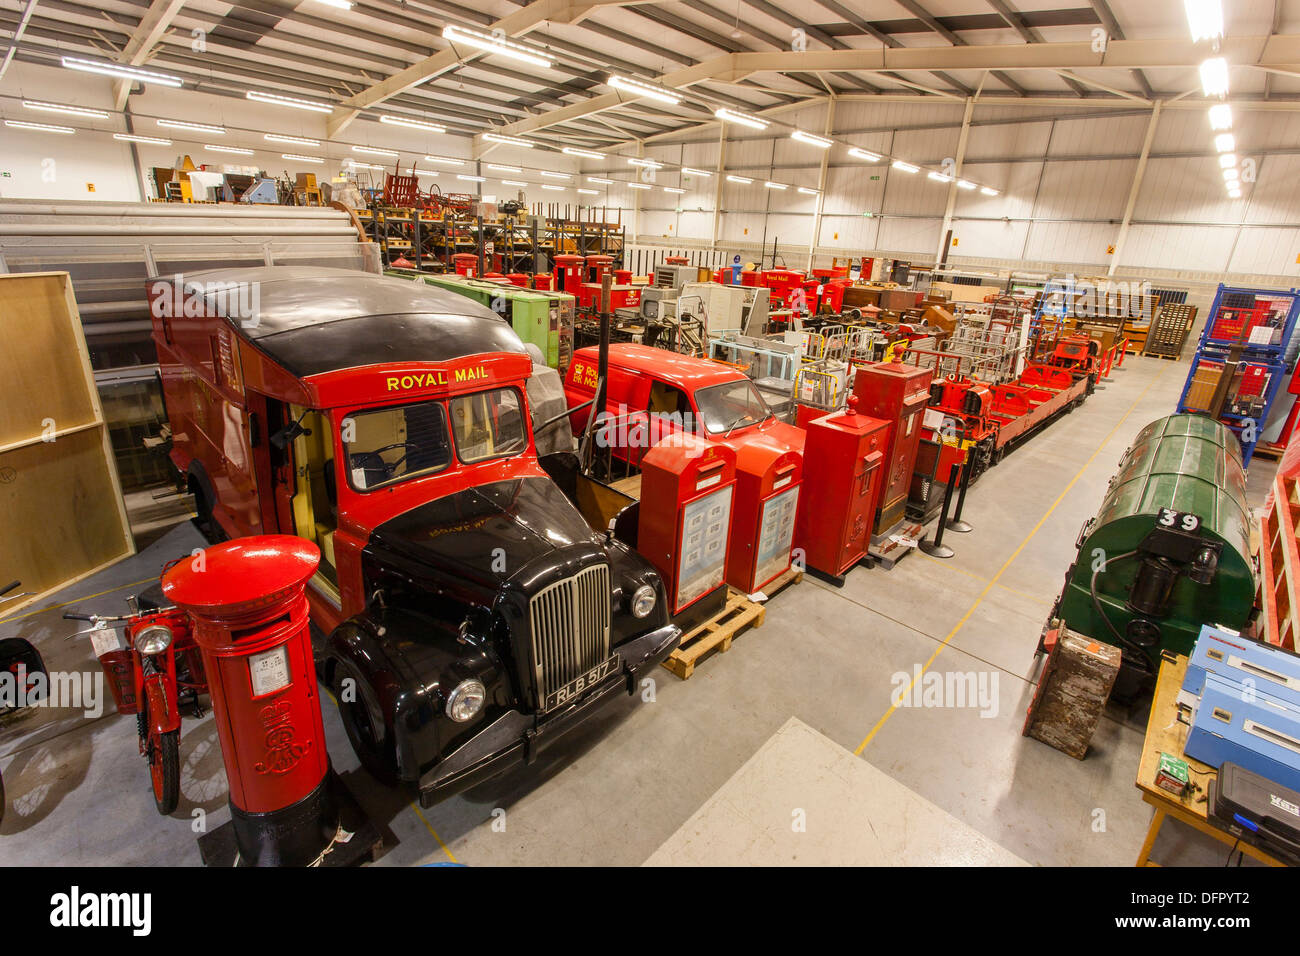 Objects stored at the British Postal Museum Store at Debden. A Morris Commercial LC5 Royal Mail van from 1956 sits in the foreground with a line of private posting boxes. Mail cars from the Post Office (London) Railway from 1927-1930 can be seen in the midground. - Stock Image